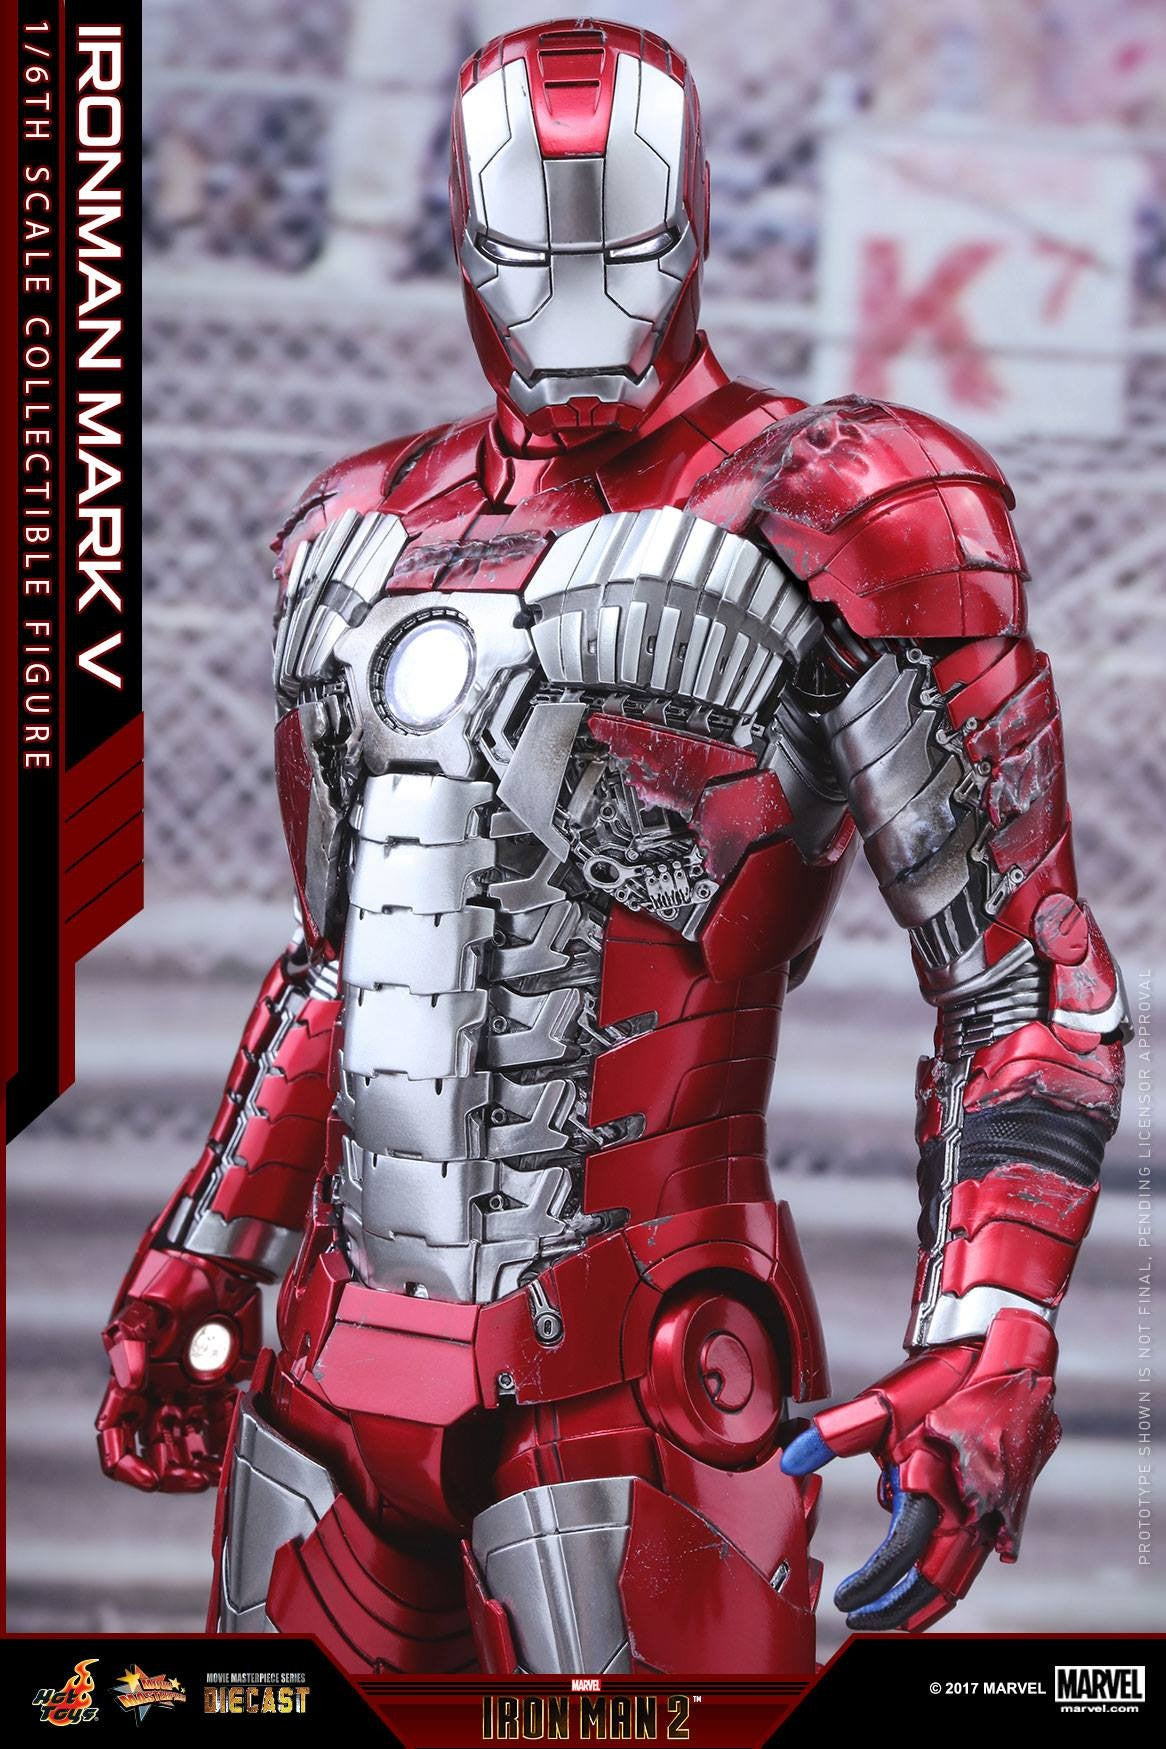 Hot Toys - MMS400D18 - Iron Man 2 - Mark V (DIECAST) - Marvelous Toys - 8